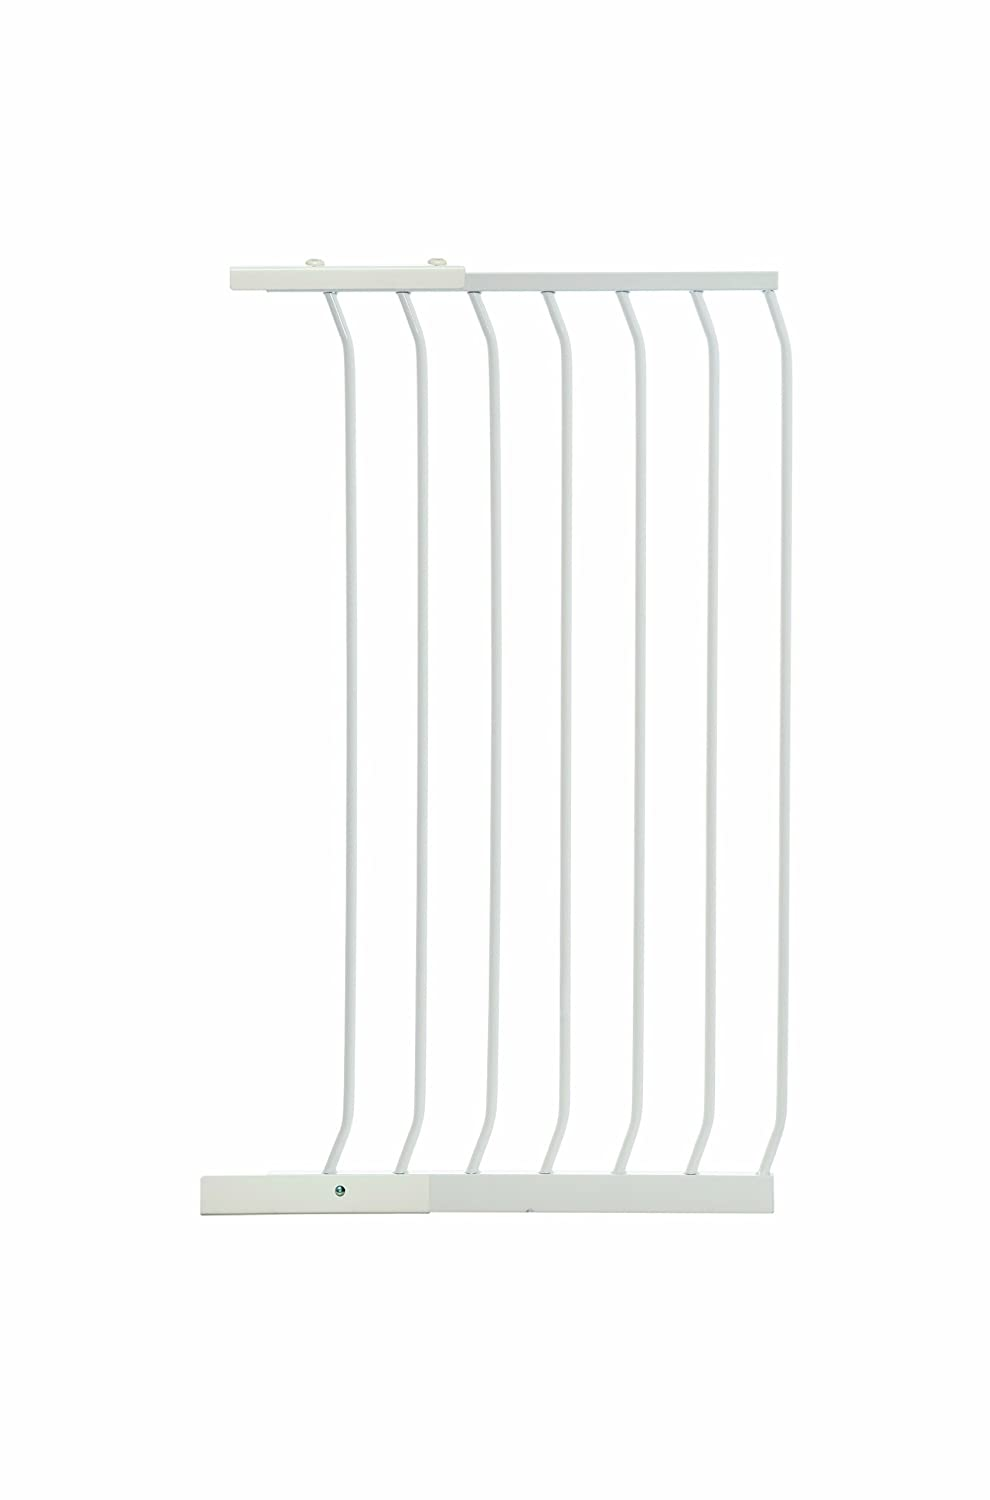 Dreambaby 21 Extra Tall Chelsea Gate Extension, White